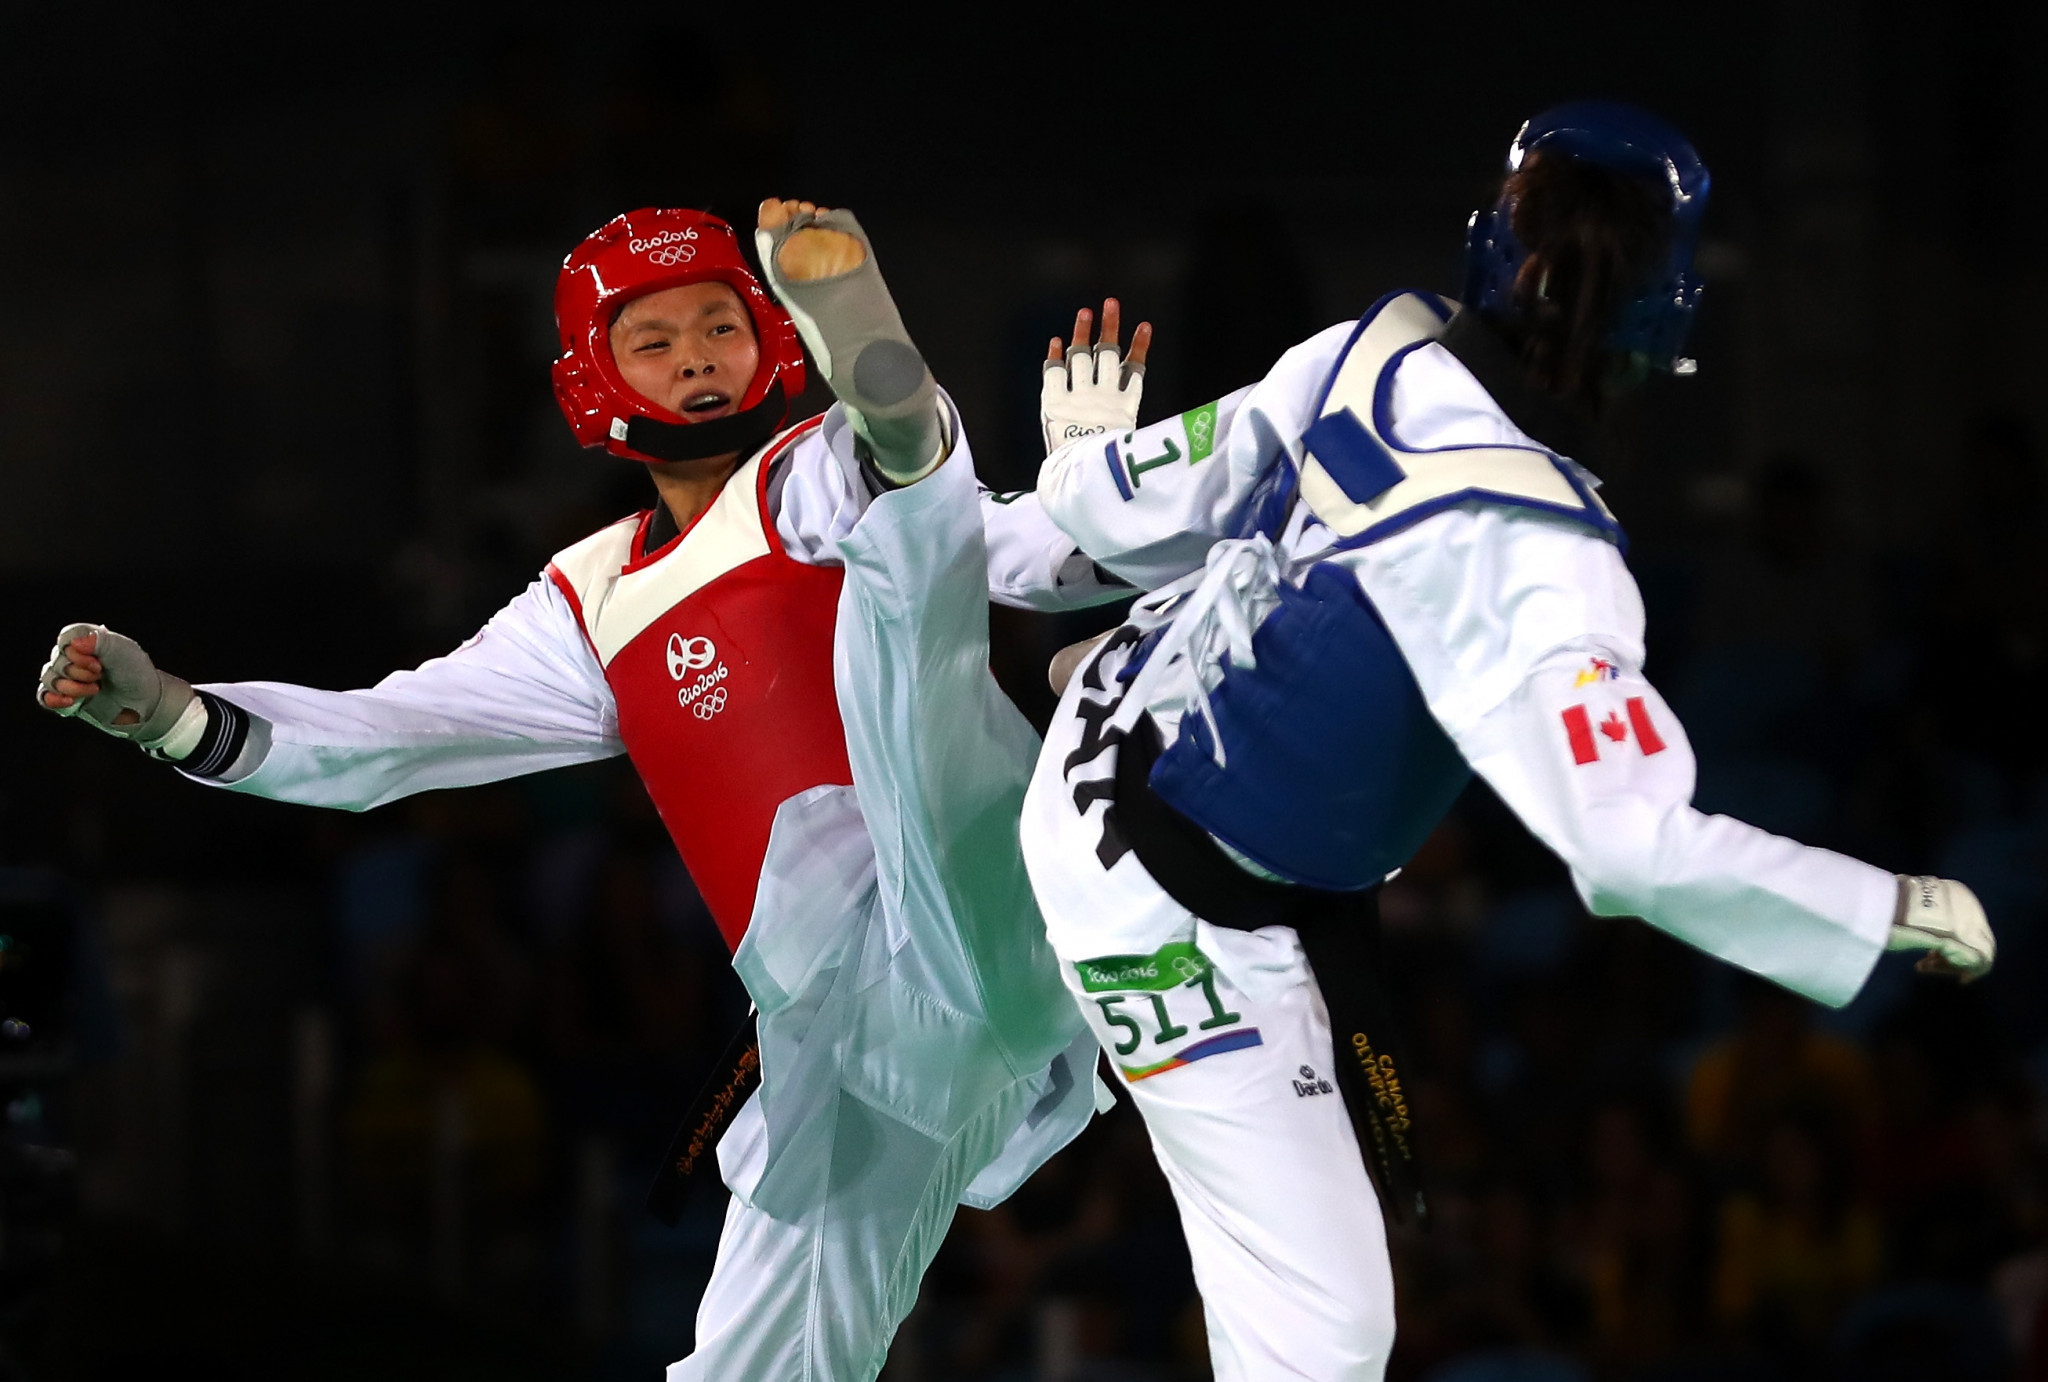 Shin Wook Lim was an official coach for Taekwondo Canada at two Olympics  ©Getty Images